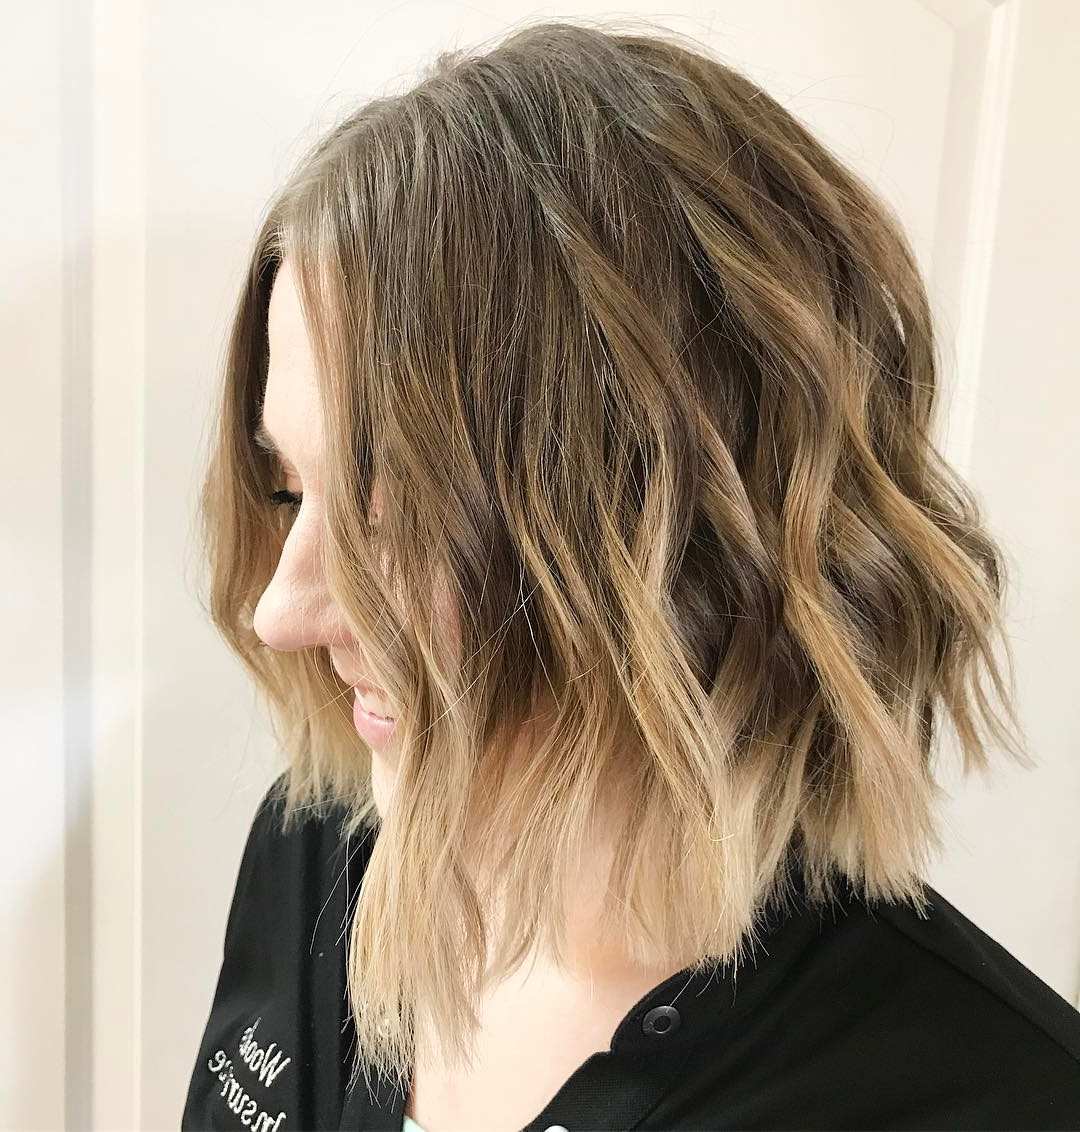 Recent Feathered Golden Brown Bob Hairstyles Inside 10 Beautiful Medium Bob Haircuts &edgy Looks: Shoulder (View 12 of 20)